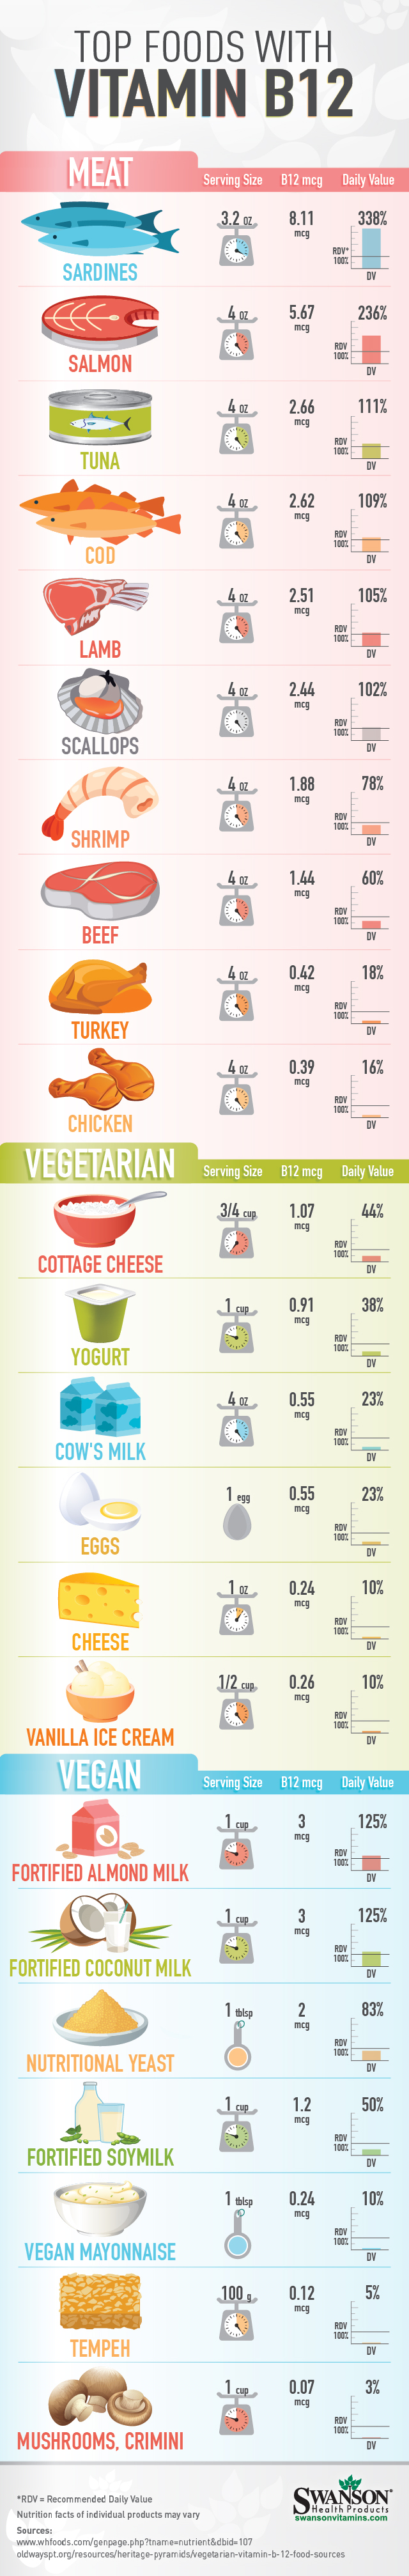 Vitamin B12 Rich Foods For Vegans And Omnivores